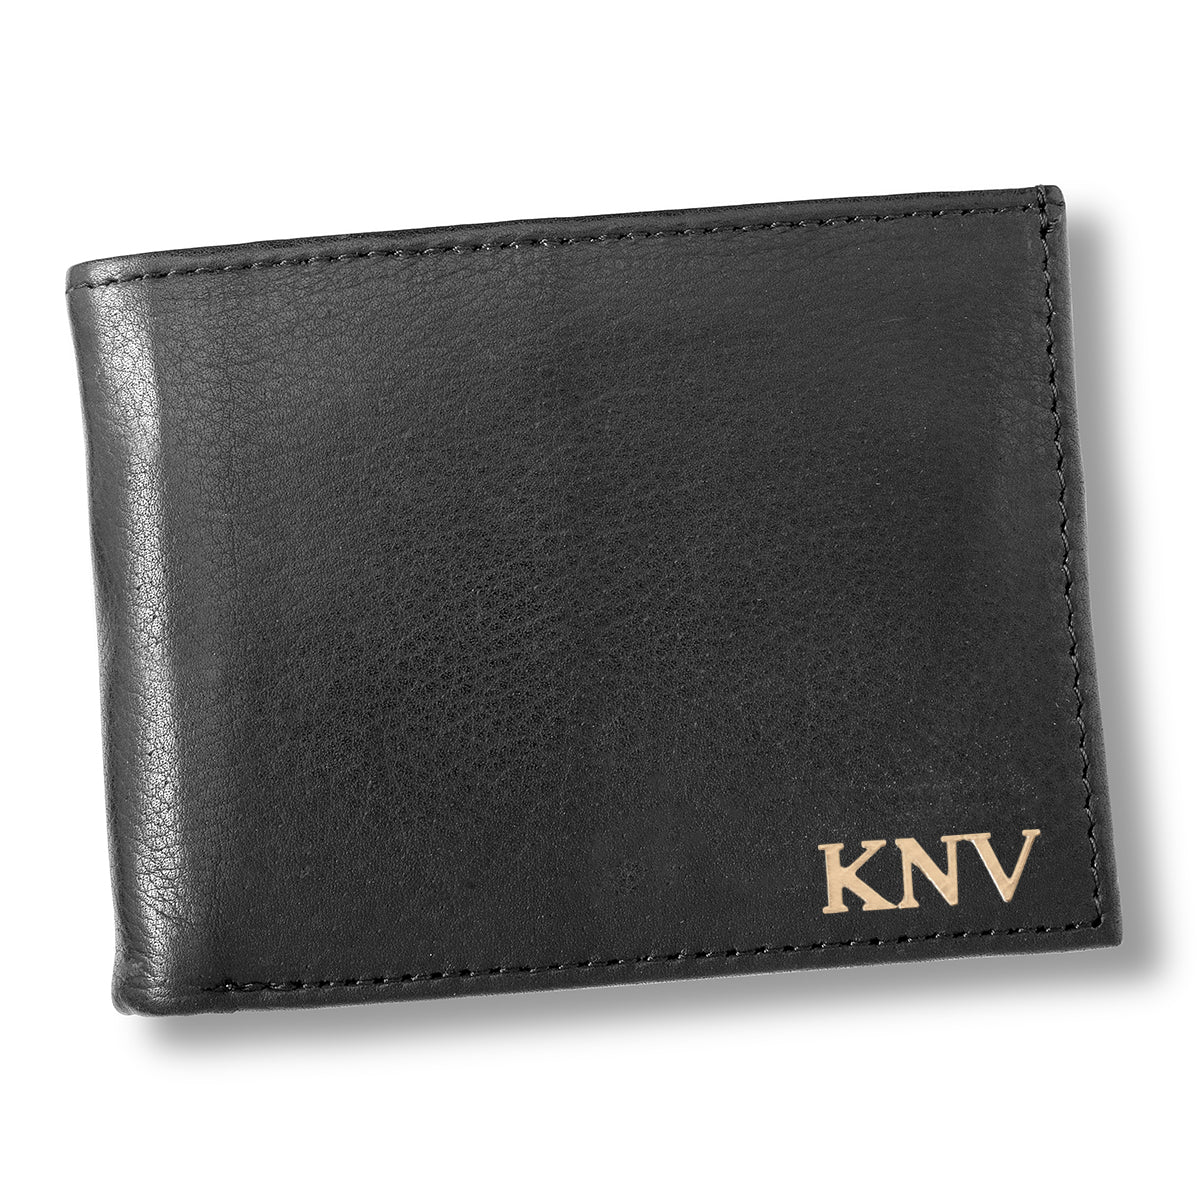 Personalized Black Borello Leather Convertible Wallet